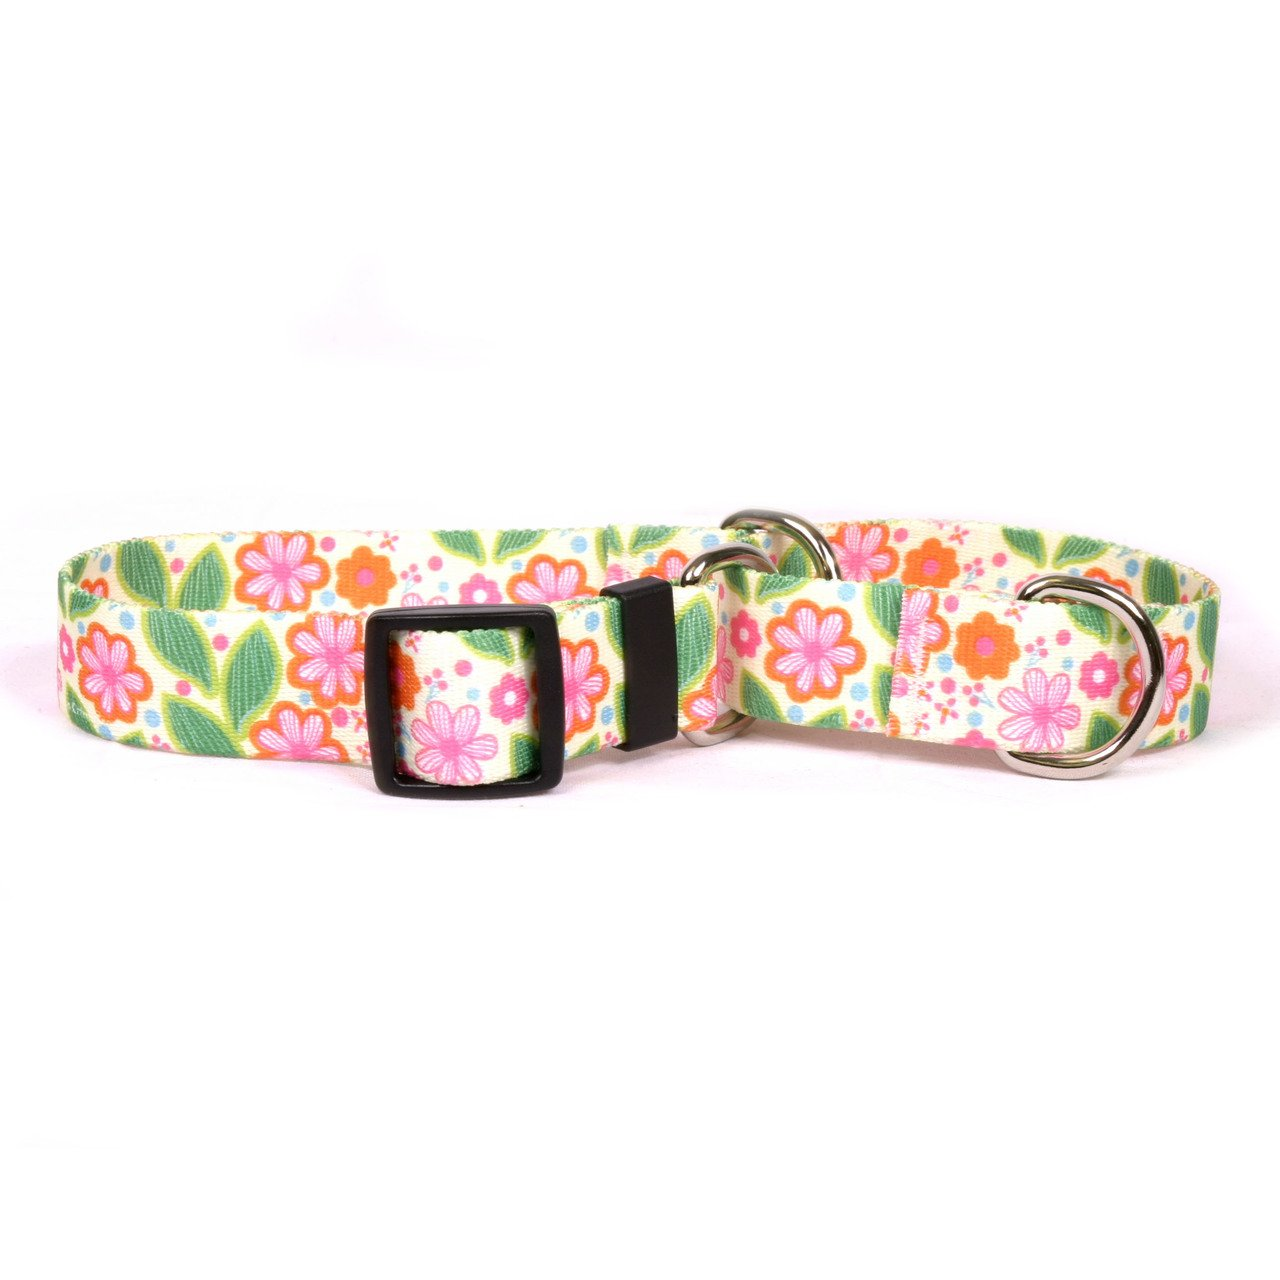 Yellow Dog Design Flower Patch Martingale Dog Collar Fits Neck 9 To 12'', X-Small/3/4